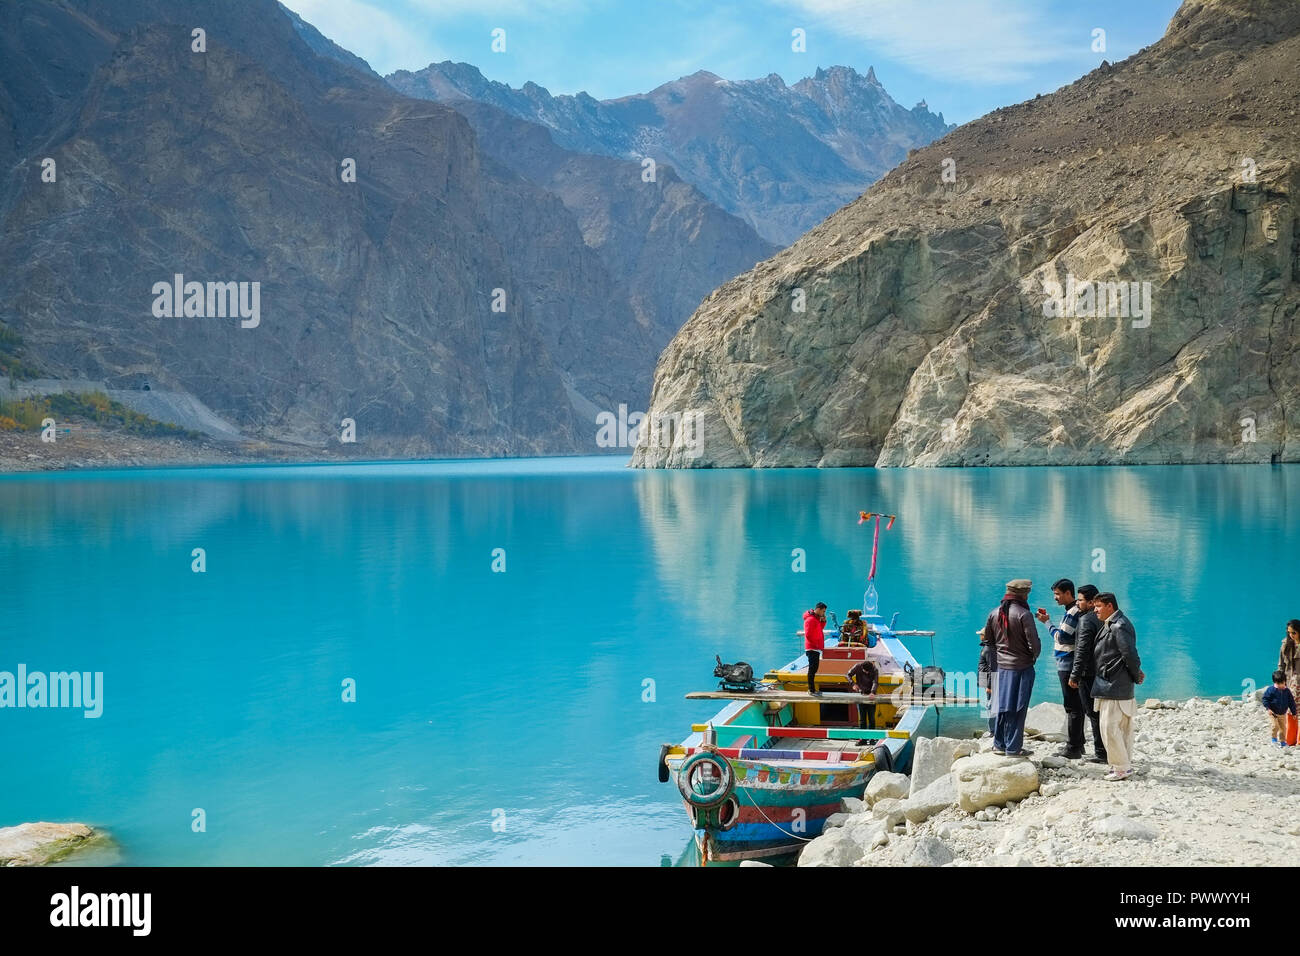 Gilgit Baltistan, Pakistan. October 28,2017 : People going to rent a boat at Attabad lake, with a view of mountains backdrop. Gojal, Hunza. - Stock Image